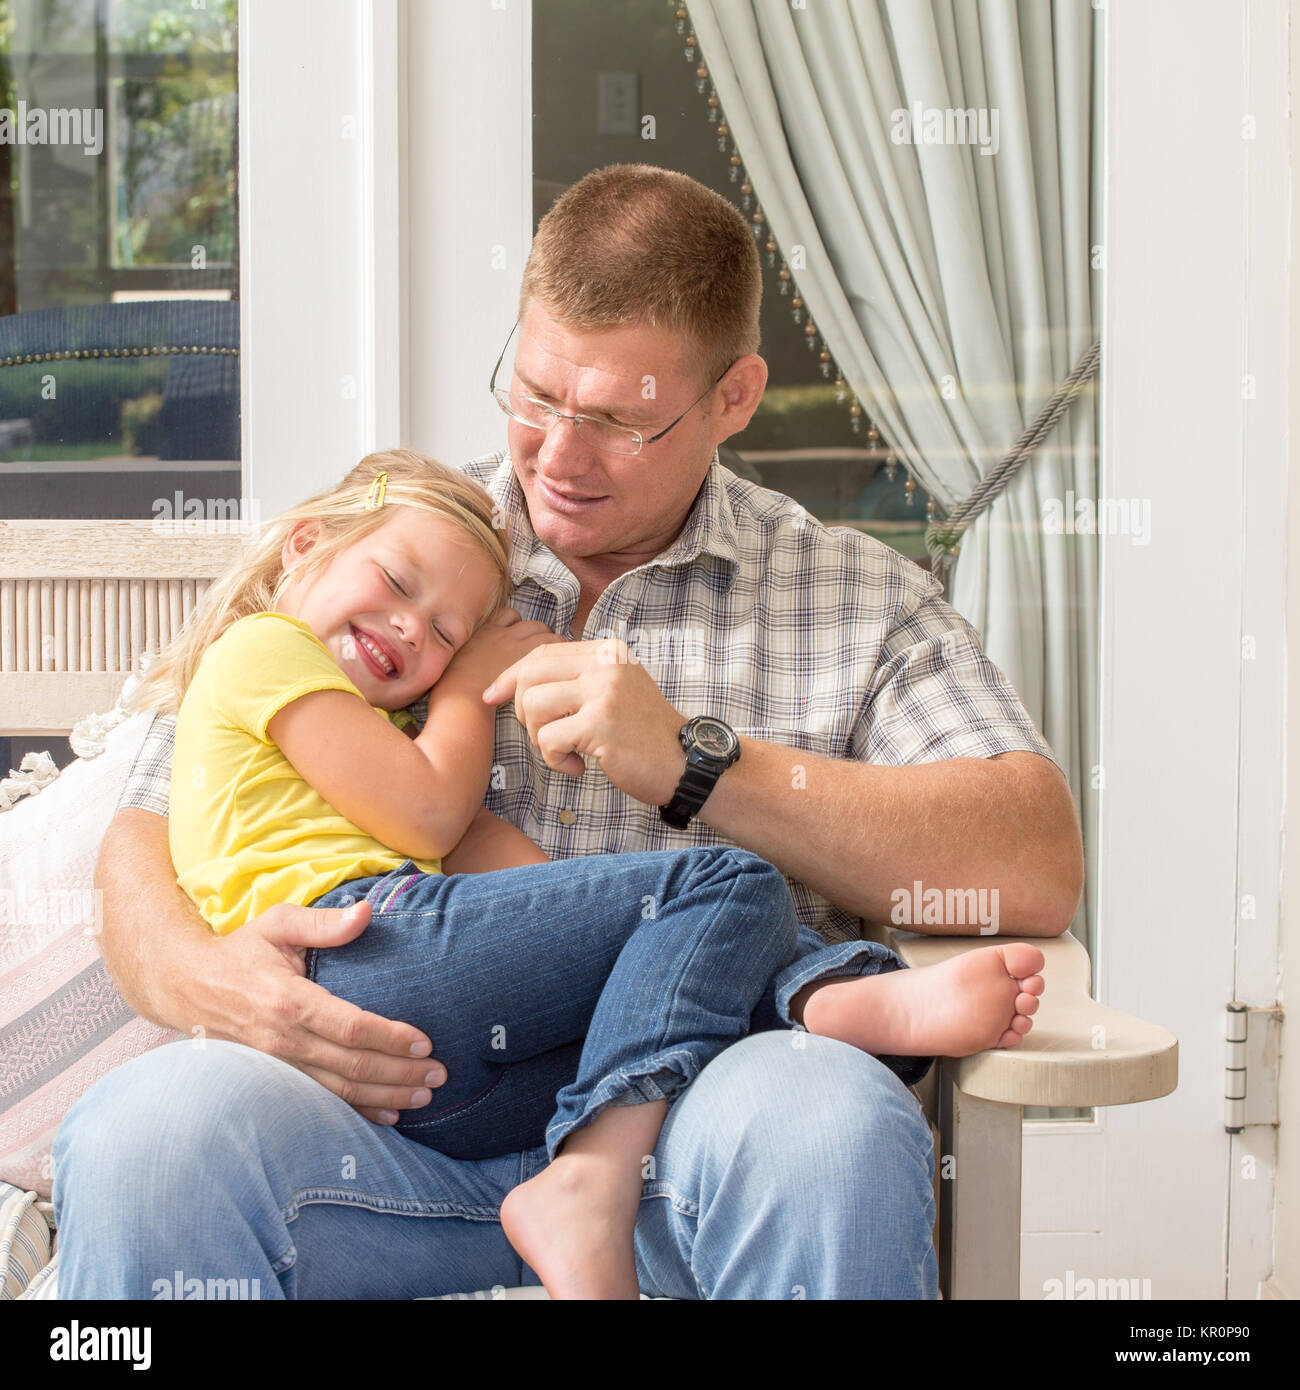 Father and daughter together on patio - Stock Image